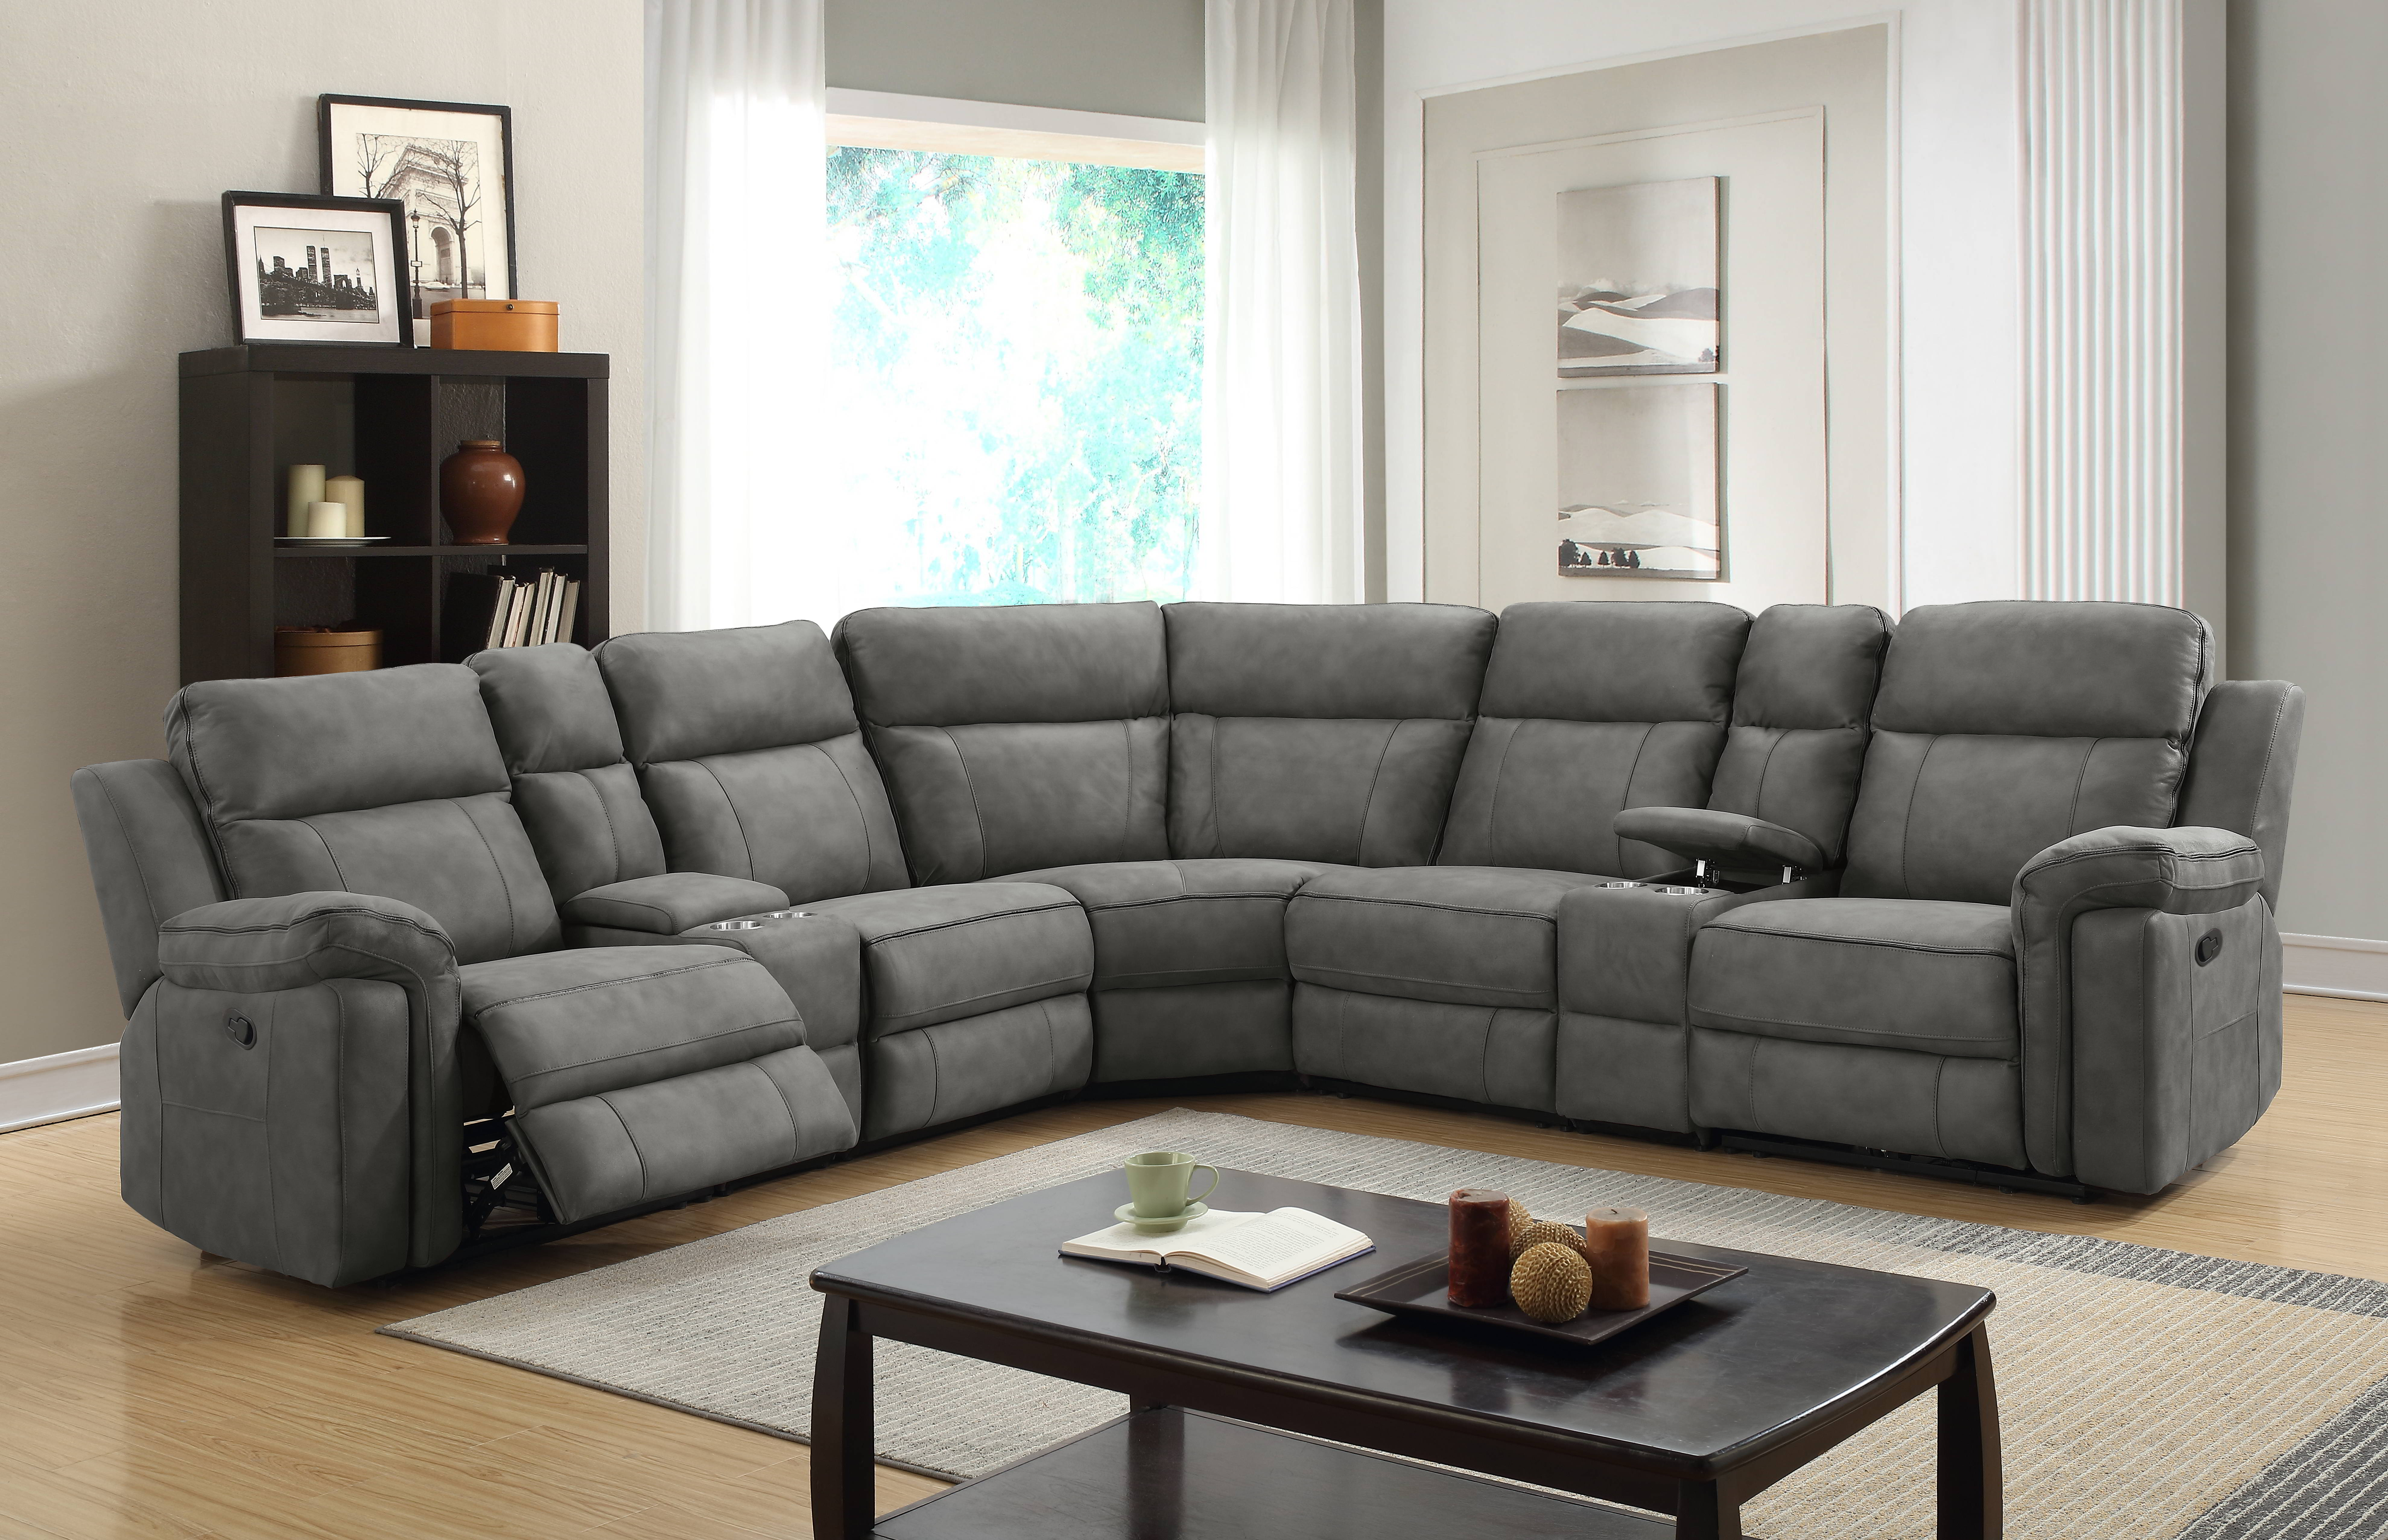 7 Pc Sectional Coffee Tables Ideas